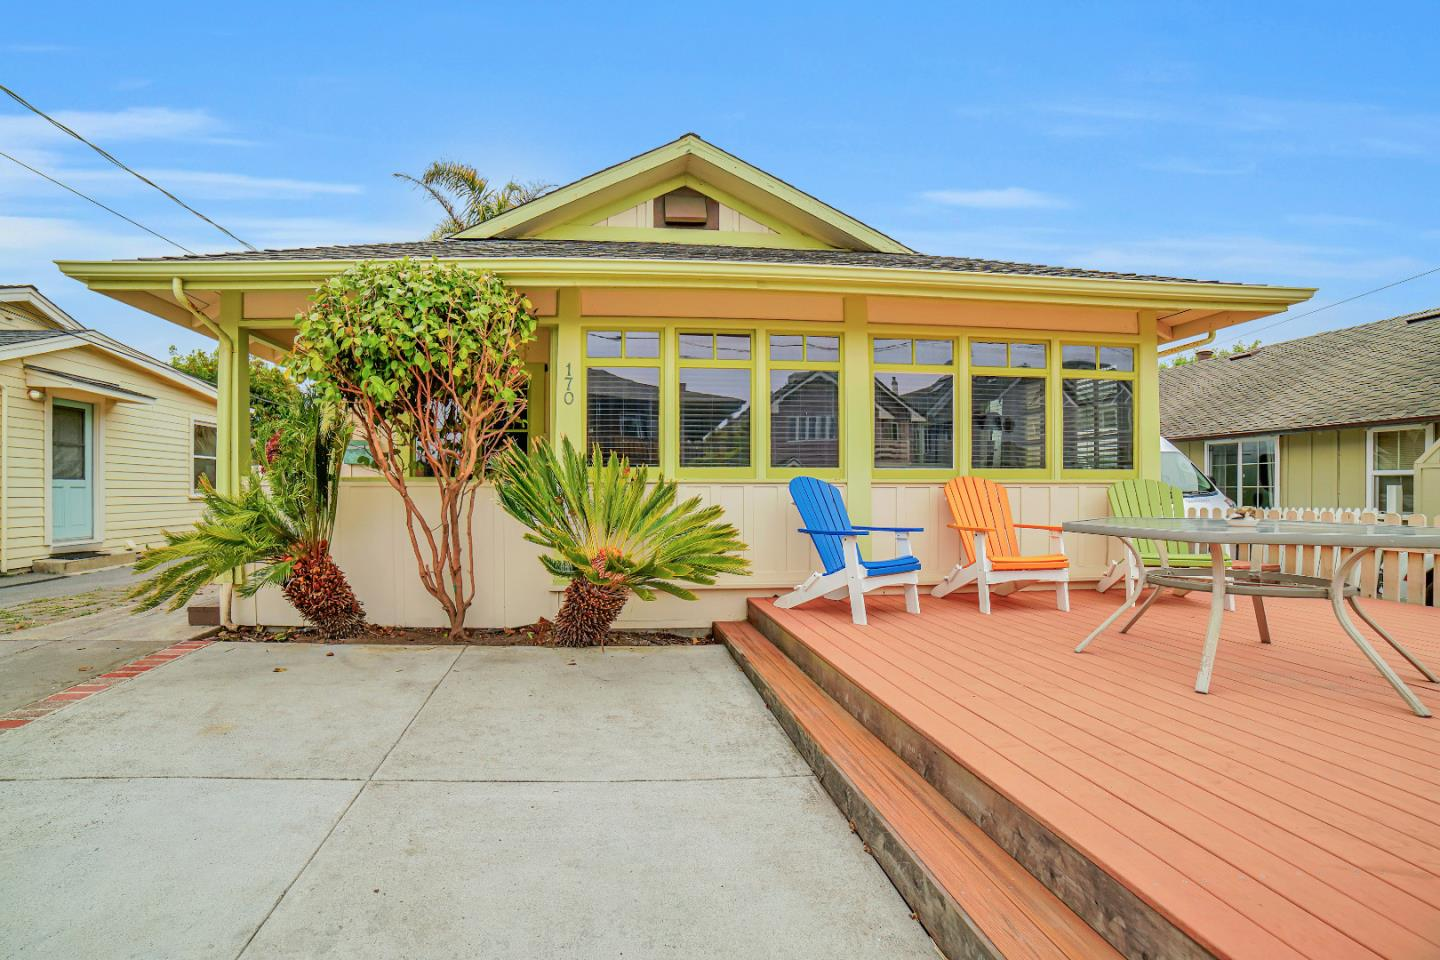 Price Reduced! Best Street in Santa Cruz leading to Black's Beach.  Create memories from this perfect Single Level 3BR/2BA Beach Home that will be passed down for generations of fun.  Stones throw ( 4 houses ) to your semi-private staircase to the Beach - Black's Beach surf spot to the left and the Crow's Nest & Harbor to your right.  Park the car and walk to everything.  Beautiful oak flooring through out, updated chef's kitchen with Viking range, oven and dishwasher, stone counter tops.  Newer beach-styled bathroom.  Ceiling is original wainscot to complete The Beach Theme. Great rear yard with deck & hot-tub with outdoor shower.  Front decks for entertaining all year round and enjoying the best sunsets.  Great 2nd home, investment / retirement home or working man or woman's sigh-of-relief hide-away.  Truly a rare opportunity to call the Monterey Bay your home! Open Houses will be held Sat. Sun 12-3 By Appointment. 3D Virtual Tour:  https://my.matterport.com/show/?m=xNcF979RC5w&mls=1